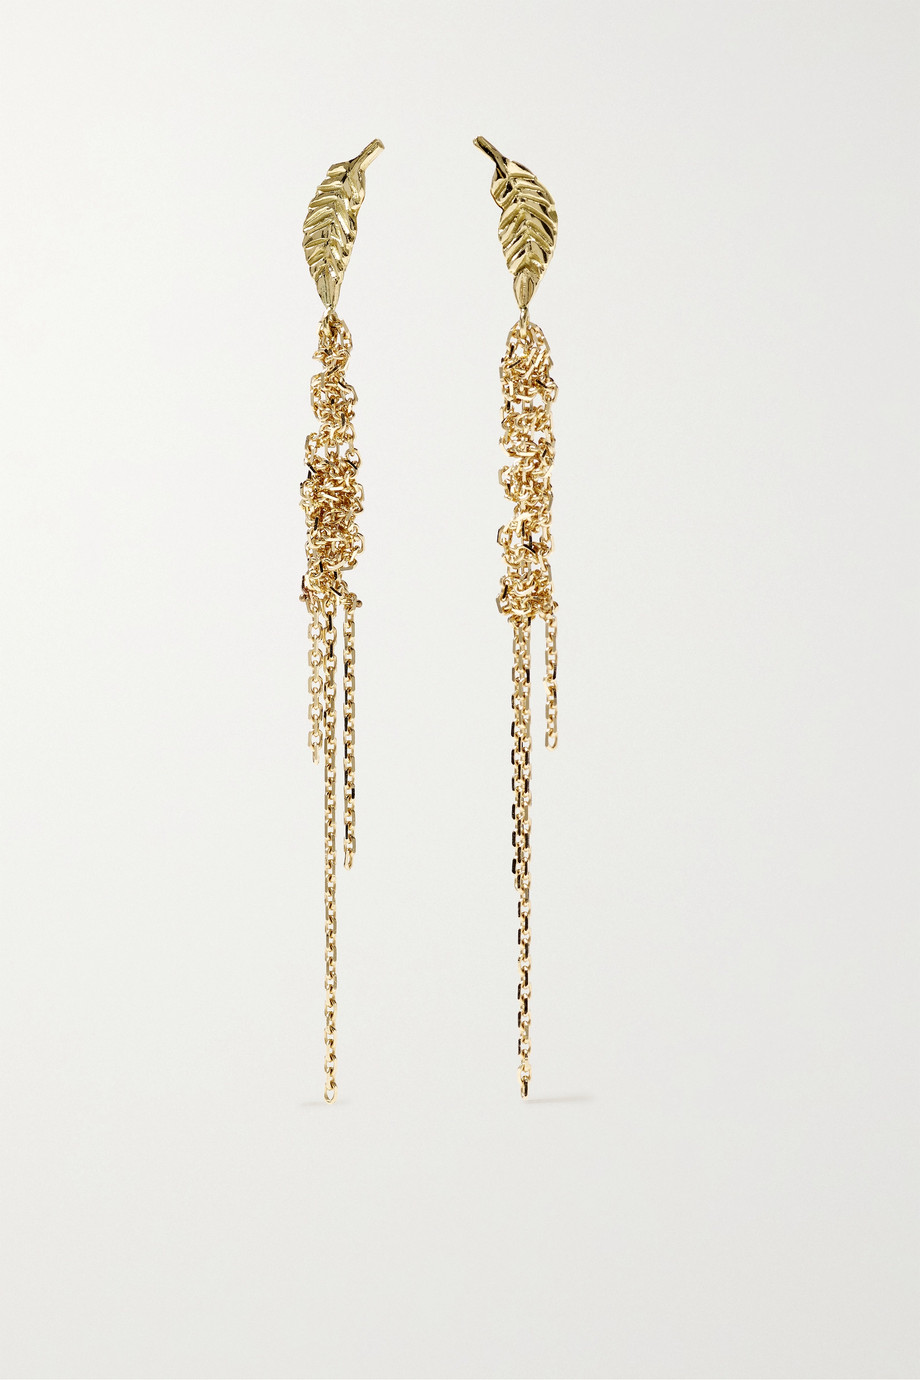 Brooke Gregson Waterfall Leaf 18-karat gold earrings